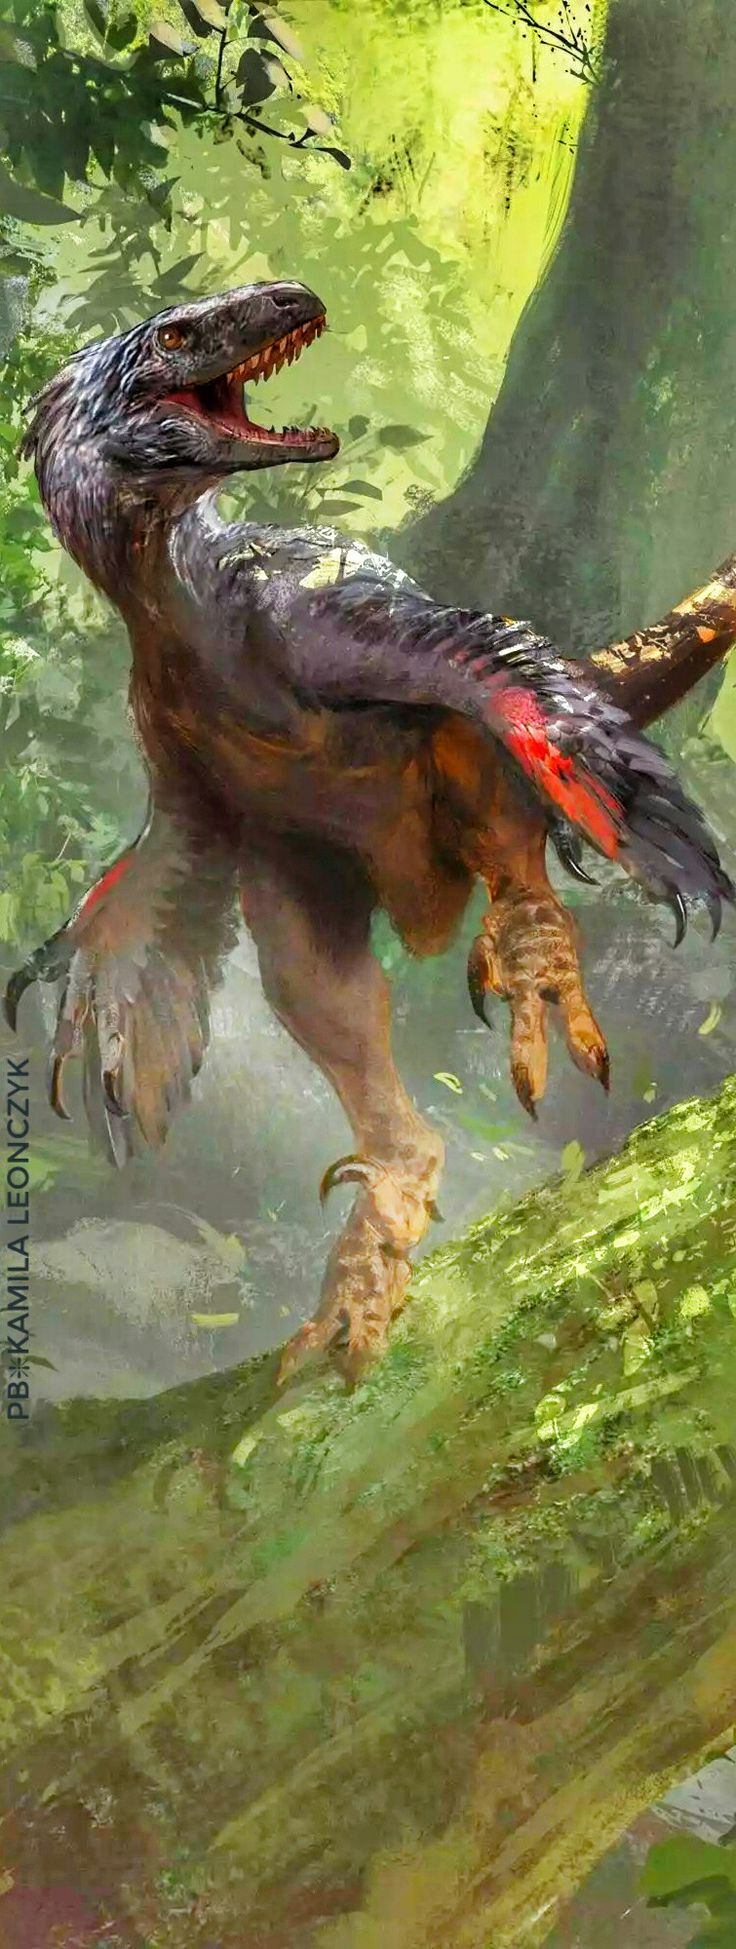 """Atrociraptor(meaning """"savage robber"""") is agenusofdromaeosauridtheropoddinosaurfrom theLate Cretaceous(Maastrichtianstage) ofAlberta,Canada.Thetype(and only) specimen ofAtrociraptor,holotypeRTMP 95.166.1, was discovered by Wayne Marshall in 1995, in layers of theHorseshoe Canyon Formationalso containing anAlbertosaurusbonebed, nearDrumheller - Atrociraptor by Jonathan Kuo"""